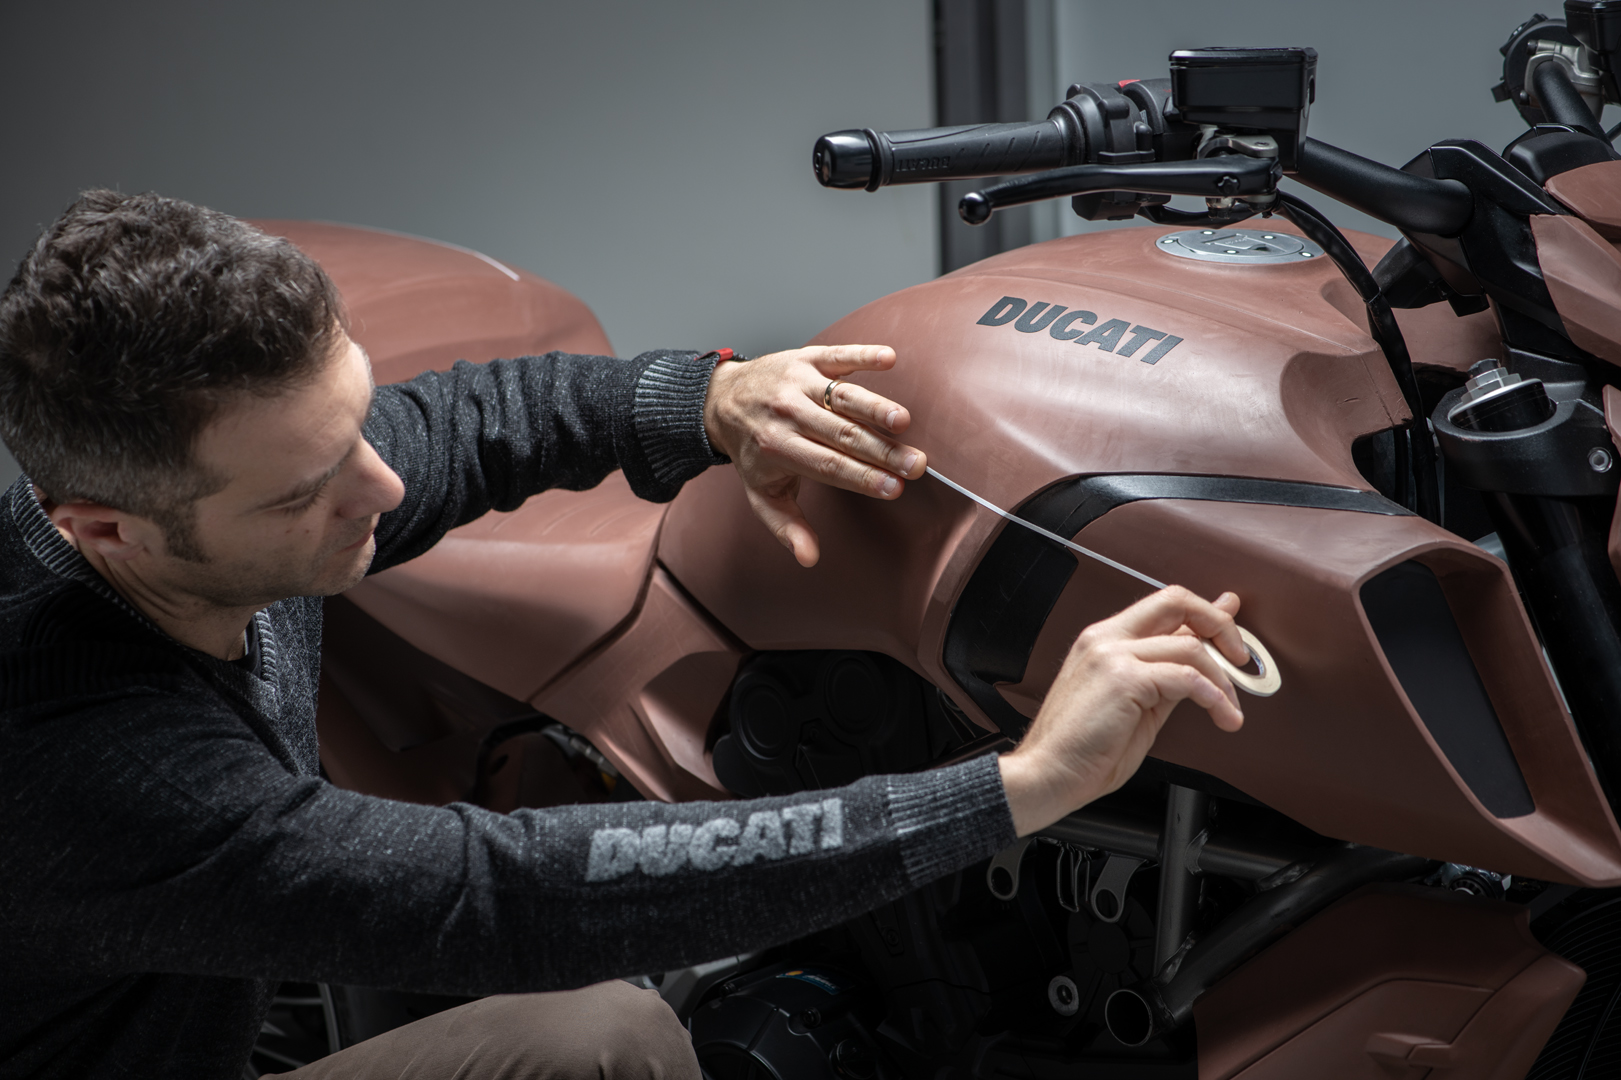 """Diavel 1260 receives the prestigious """"Red Dot Design Award 2019"""" for its unmistakeable style"""